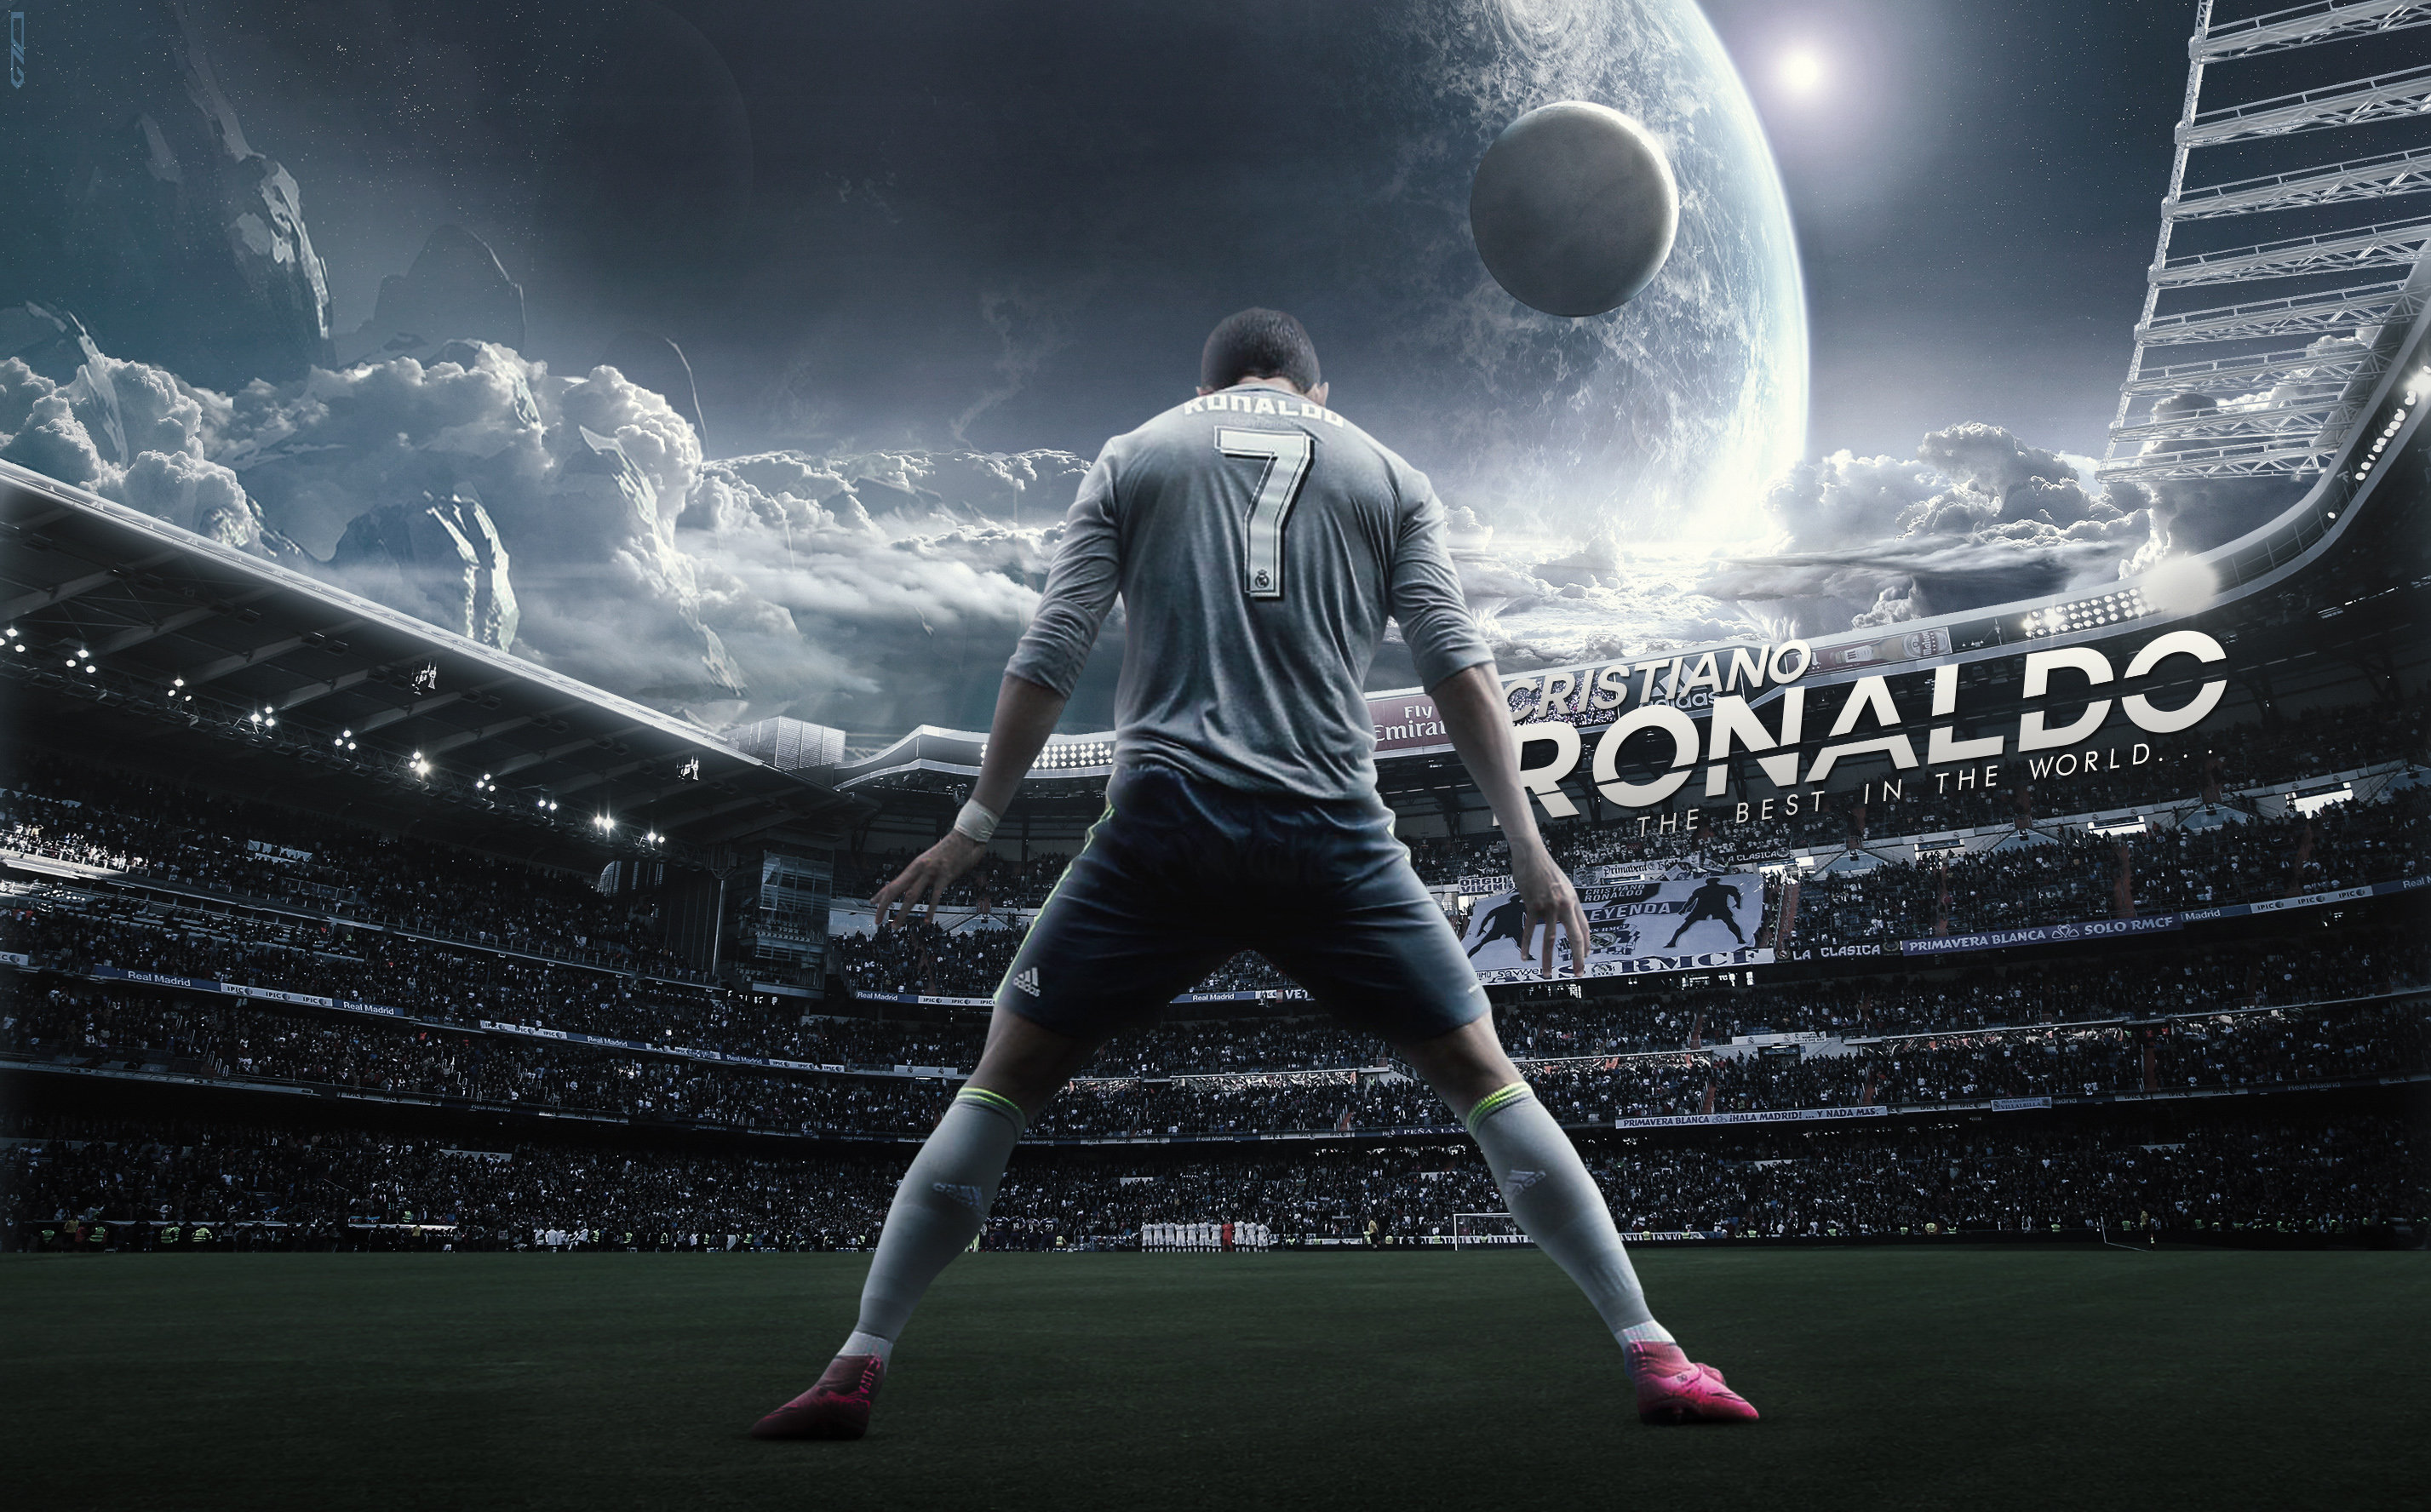 Art Of Cristiano Ronaldo Fans Wallpaper Sport Soccer: Wallpaper By DanialGFX On DeviantArt